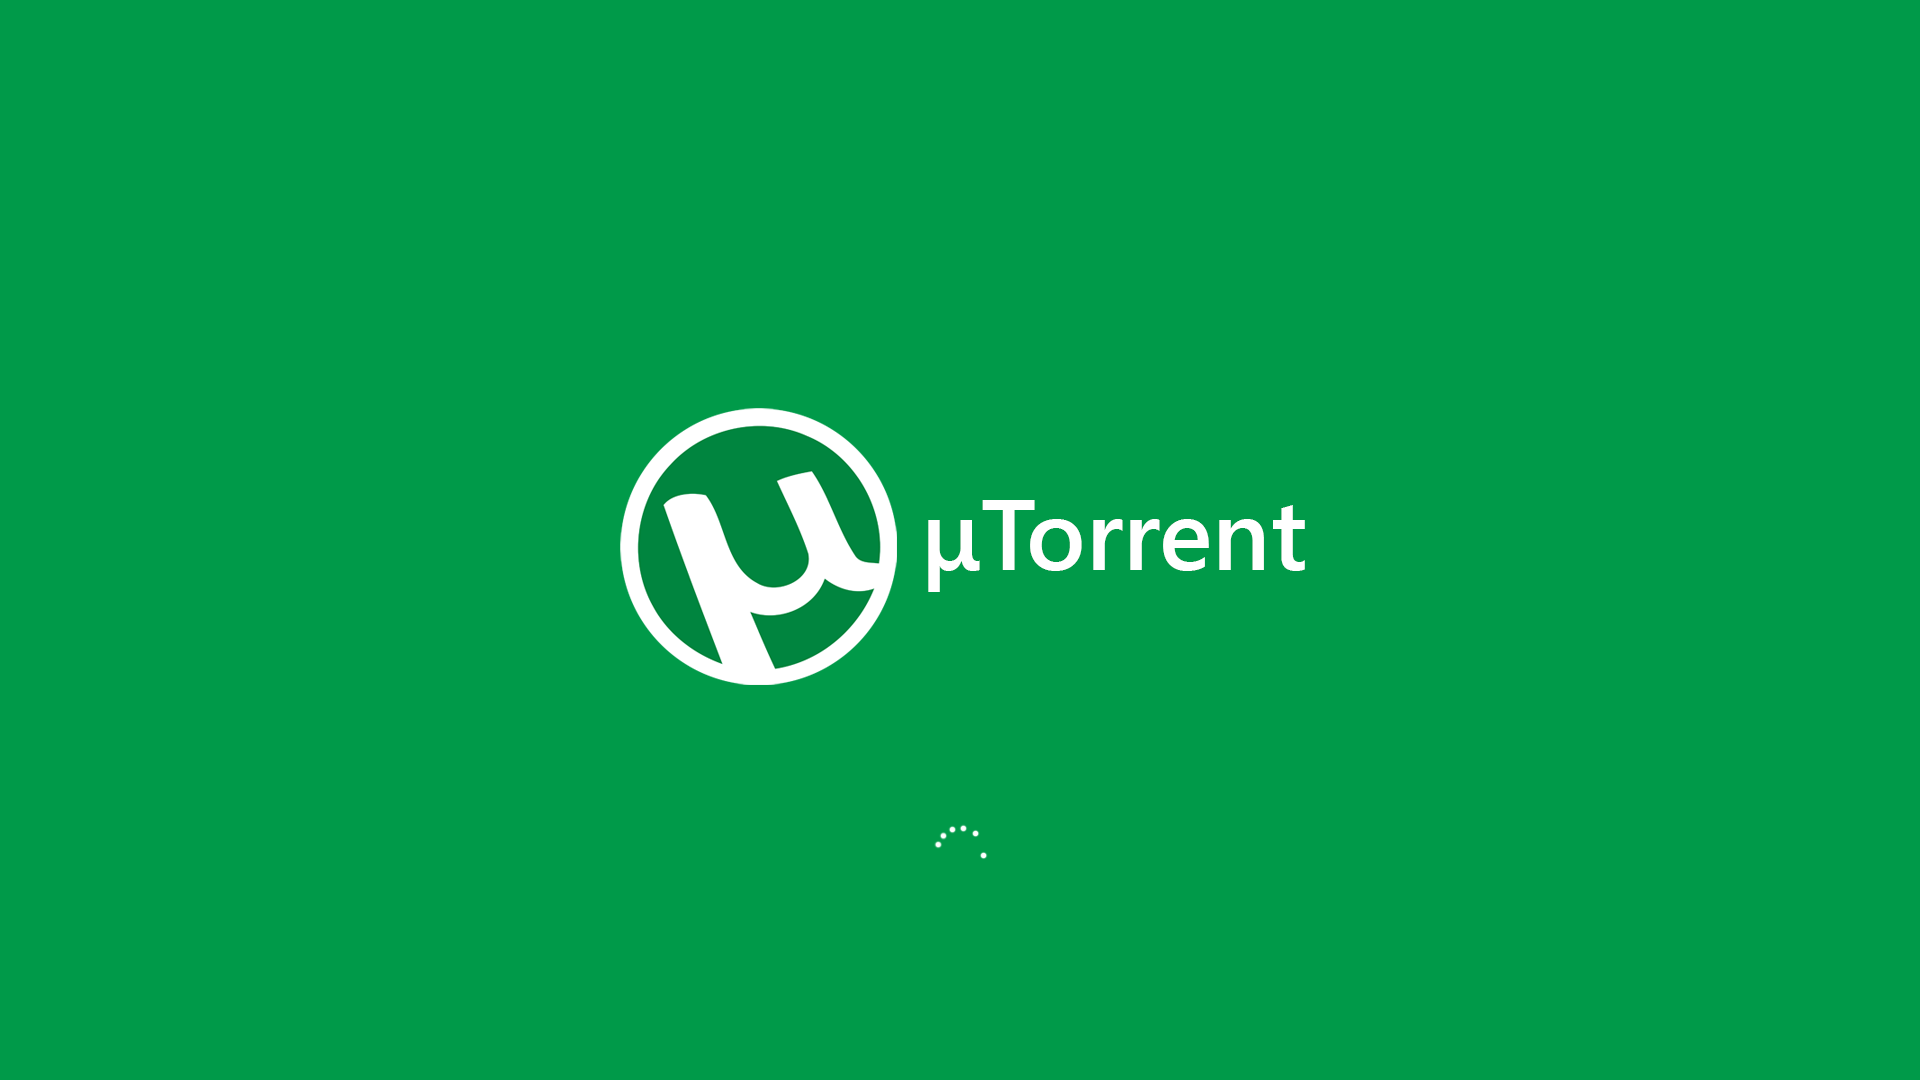 How to download file from uTorrent